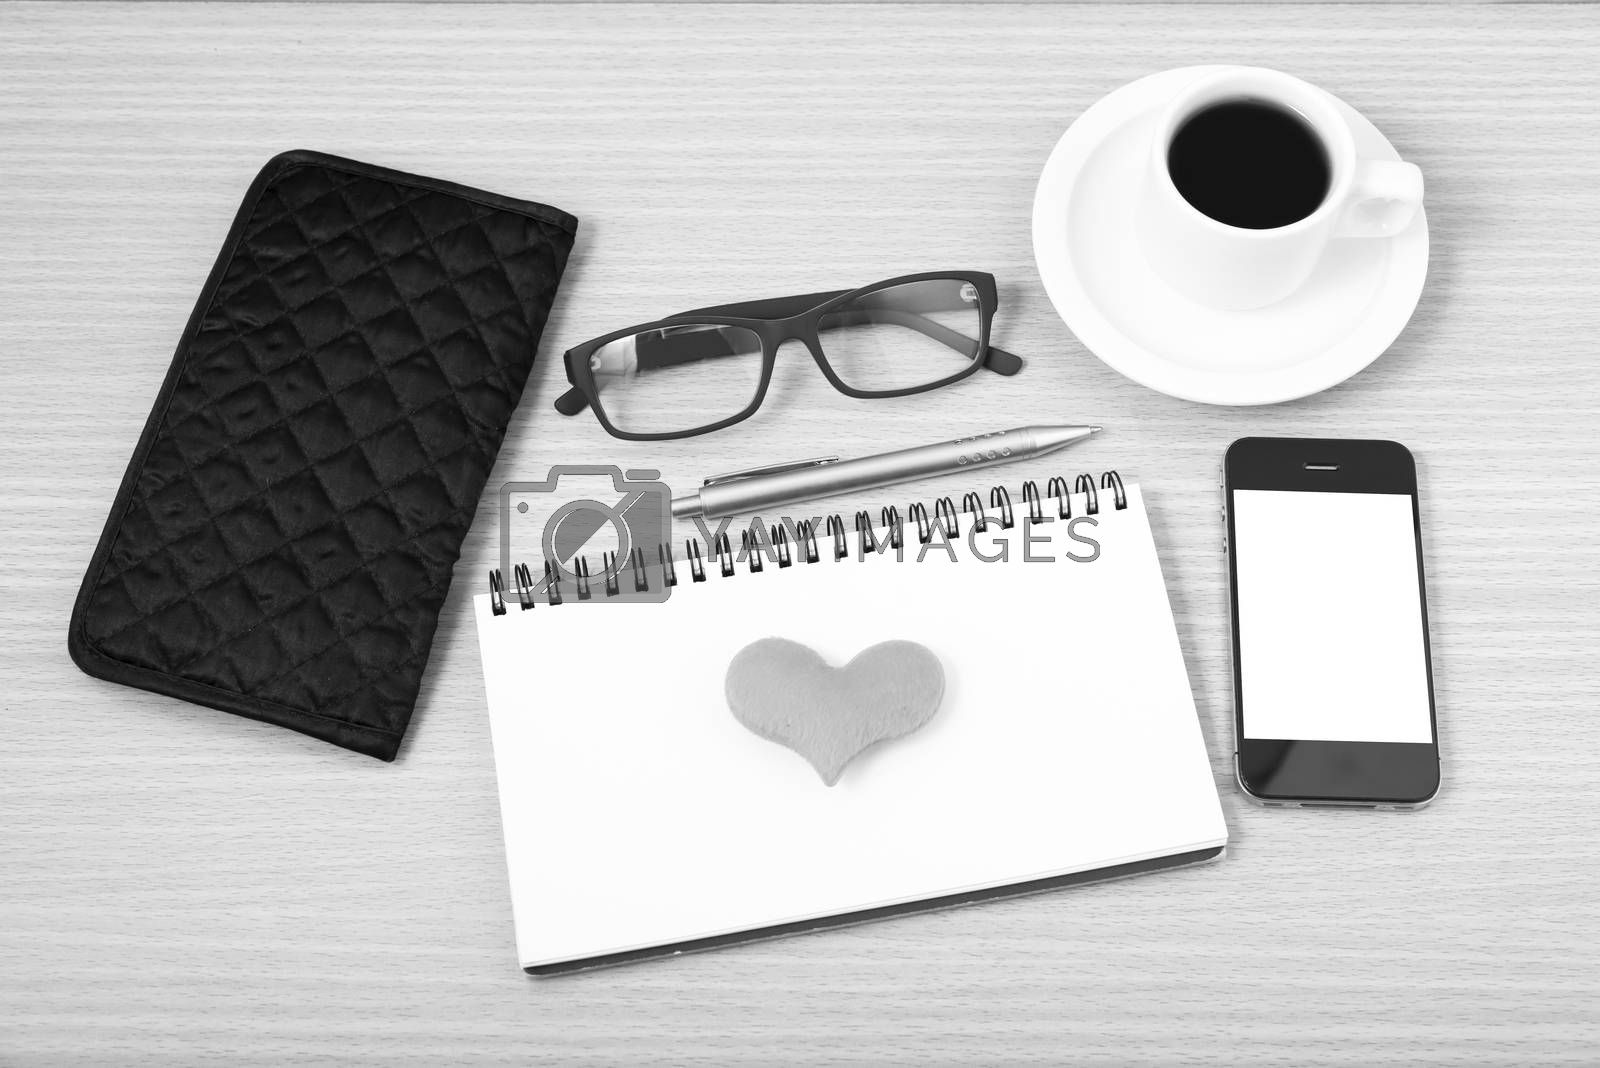 Royalty free image of office desk : coffee with phone,notepad,eyeglasses,wallet,heart  by ammza12